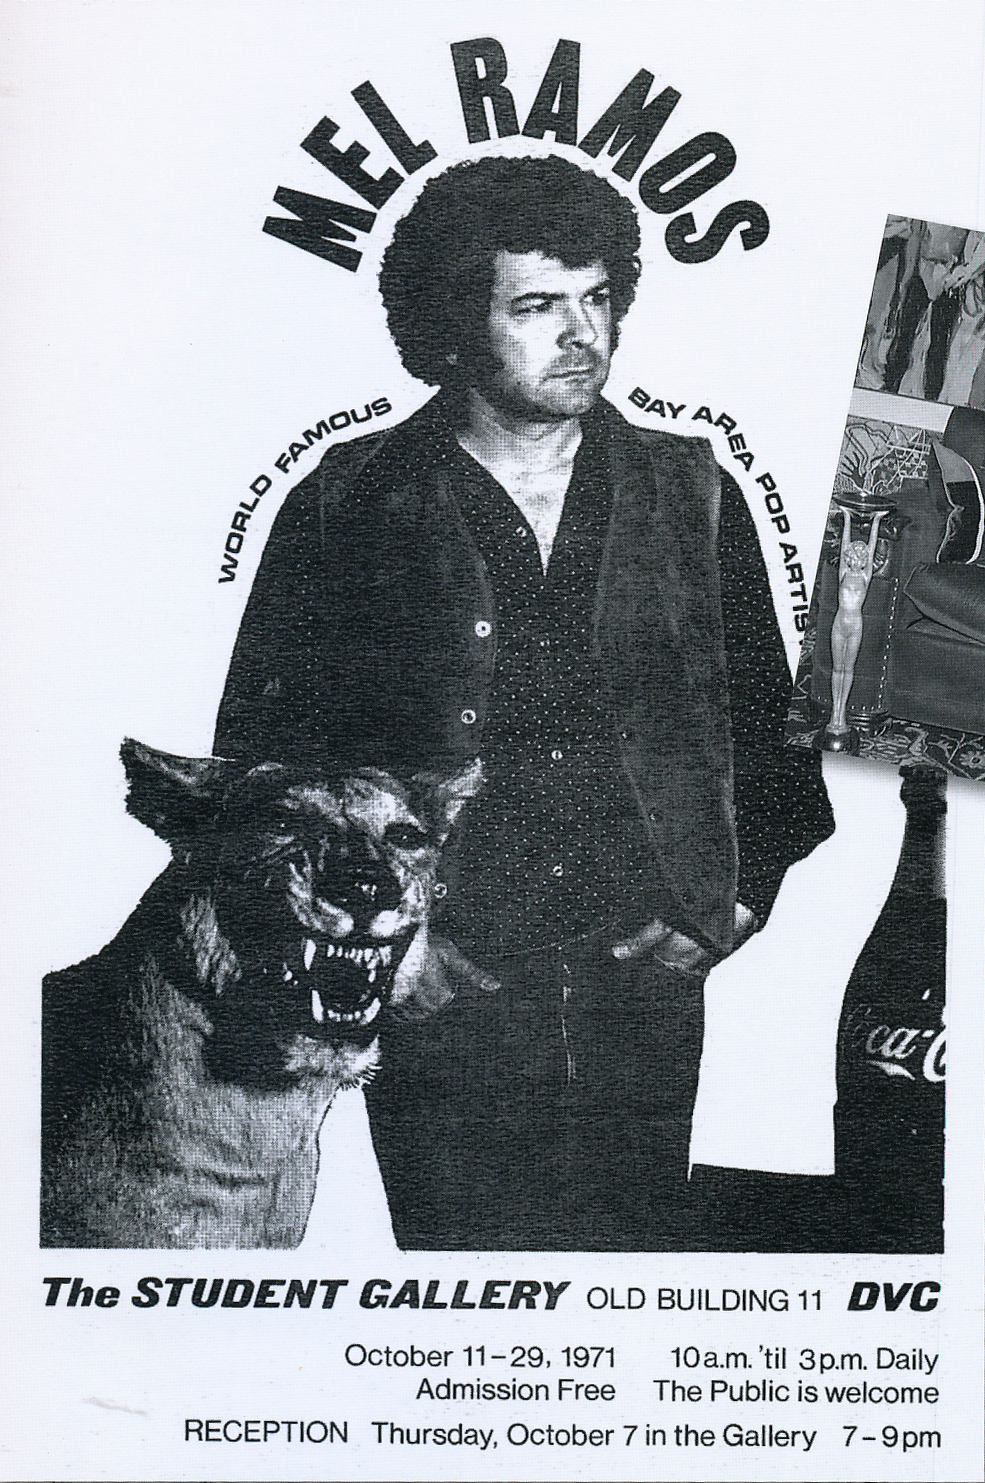 Exhibition poster for The Student Gallery, 1971.